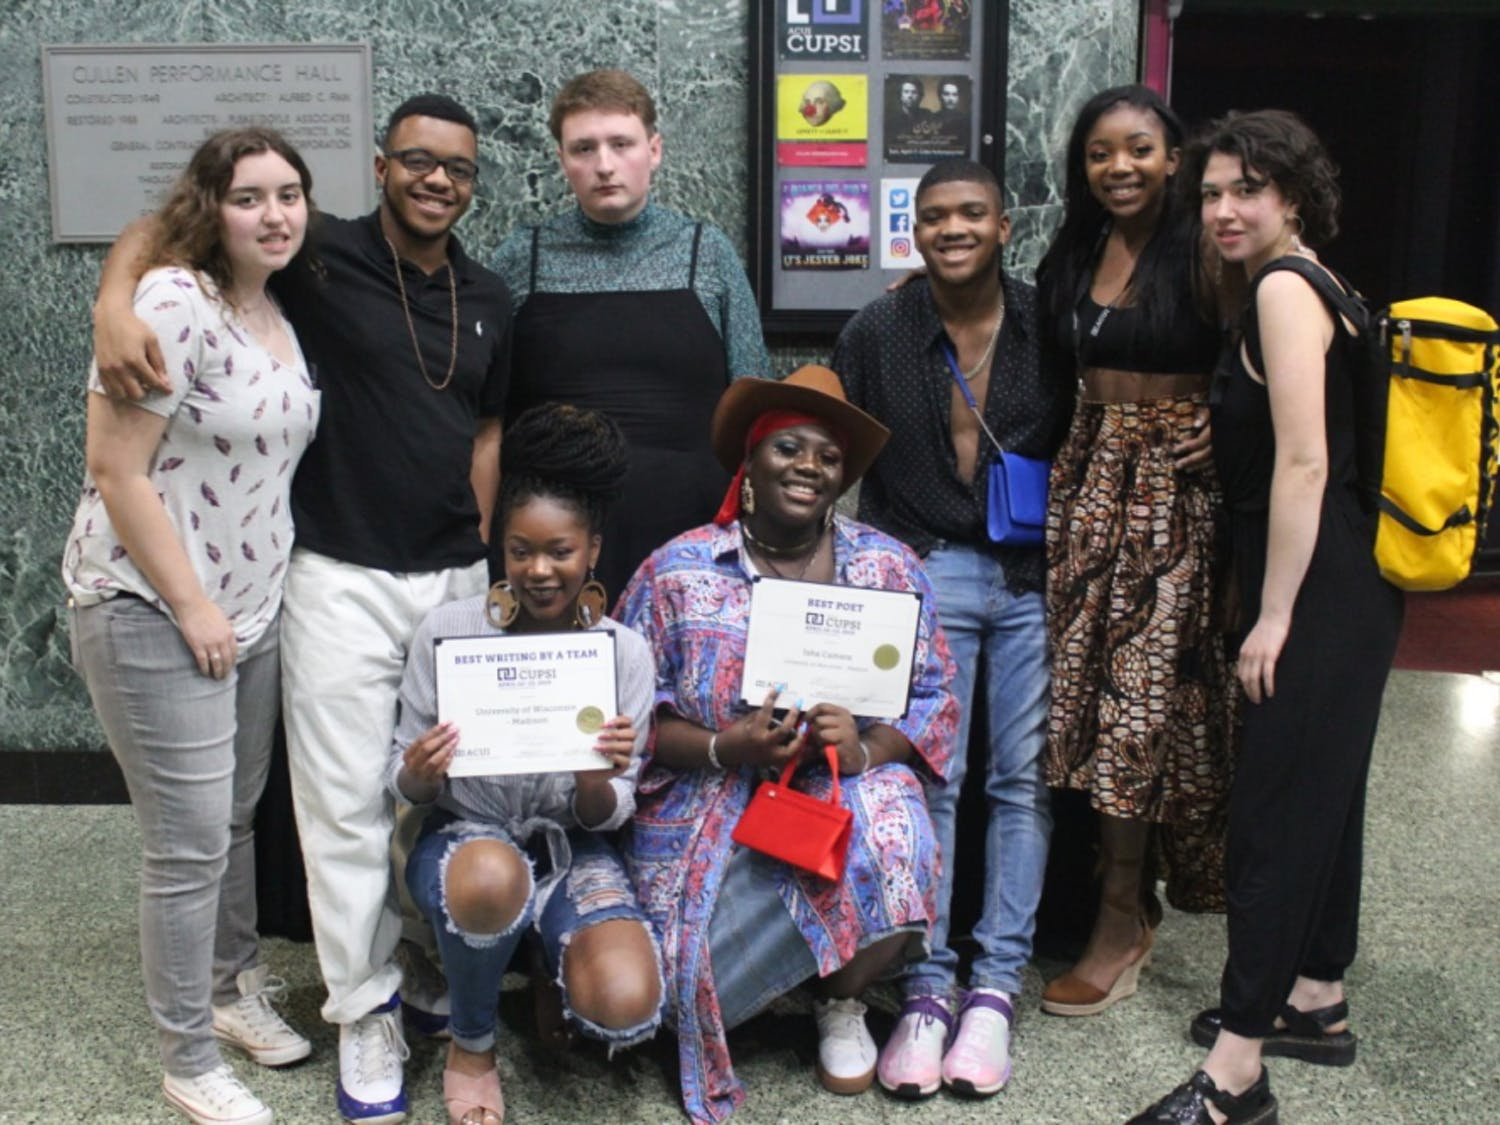 After months of preparation, students share competition success and reflect on the importance of poetry on campus.